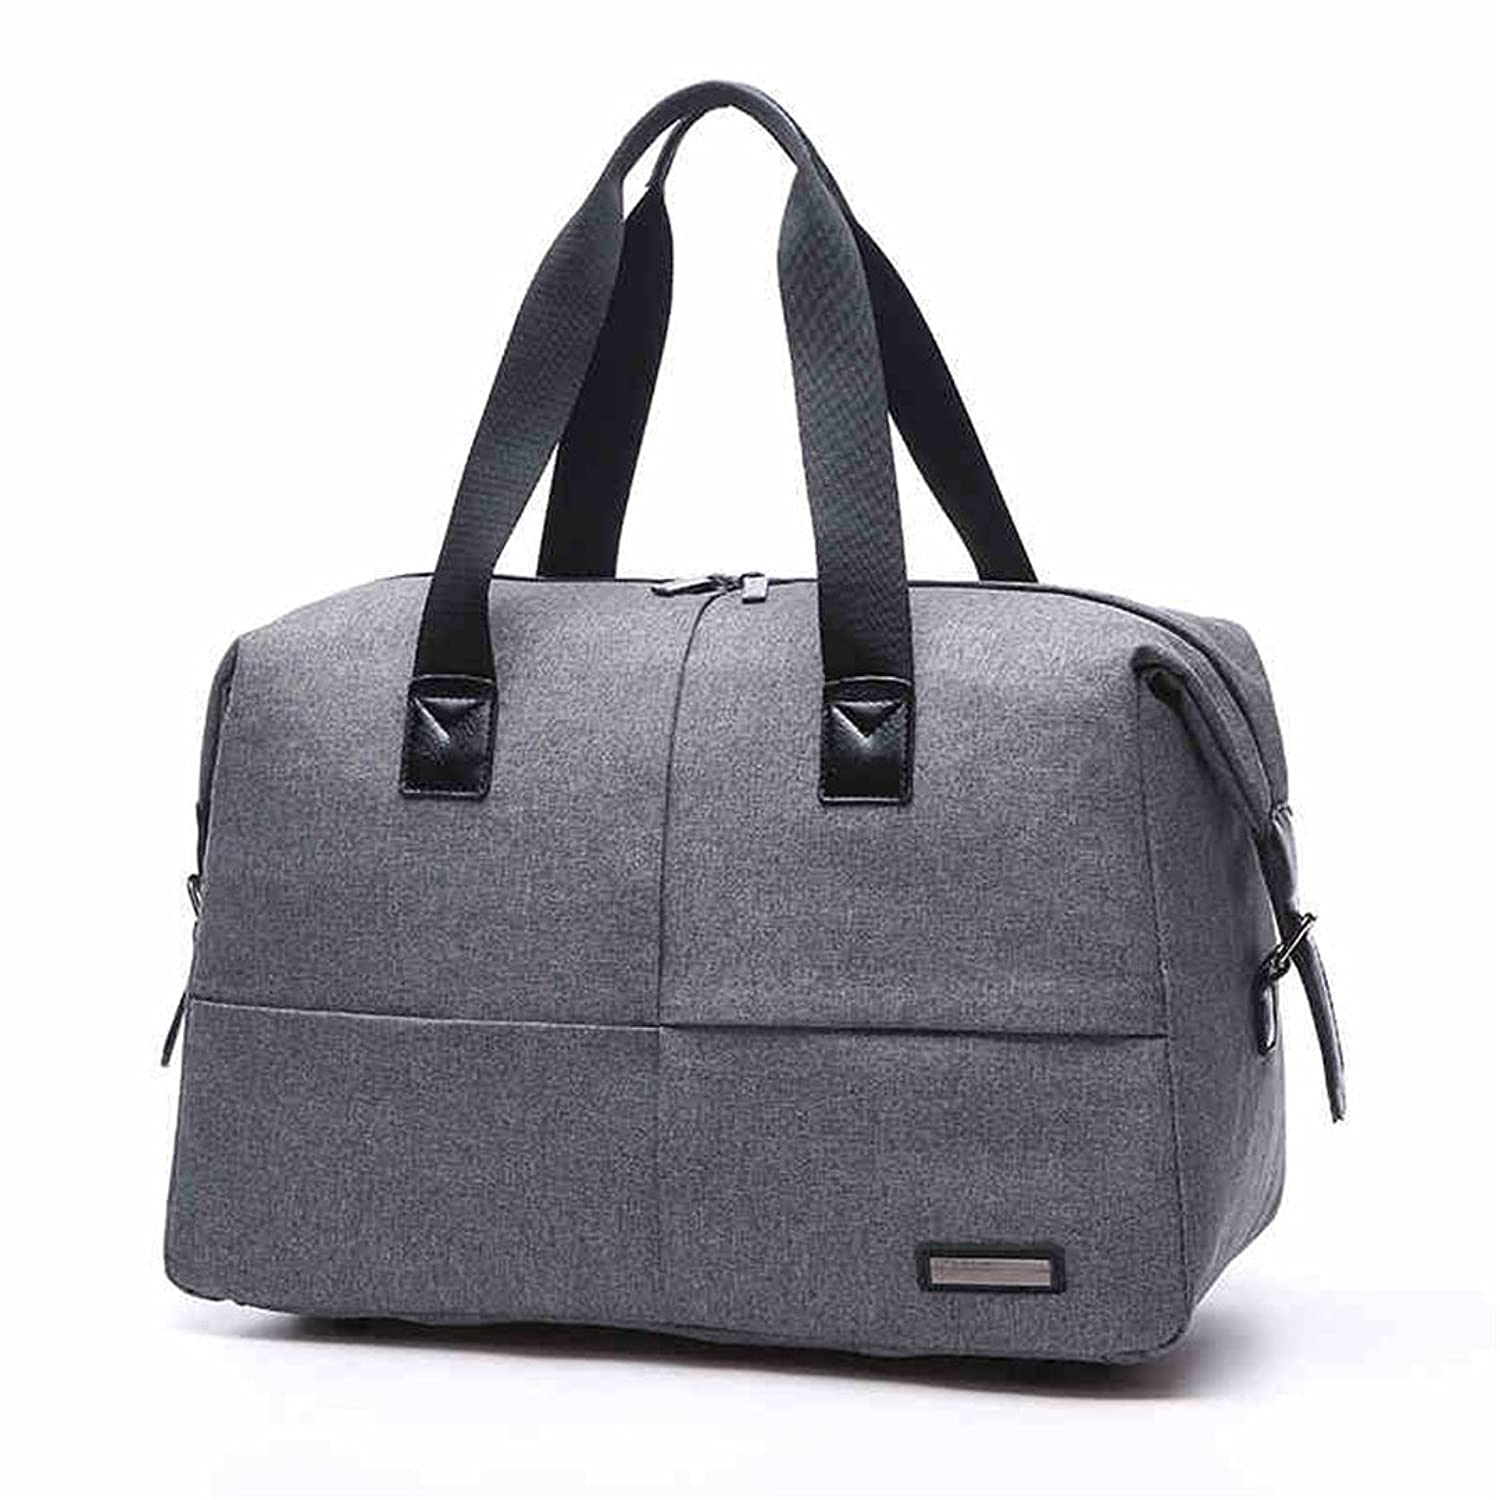 9e140c95e Men's Portable Business Travel Bag Travel Tote Bags Bags Carrying Weekend  Bags